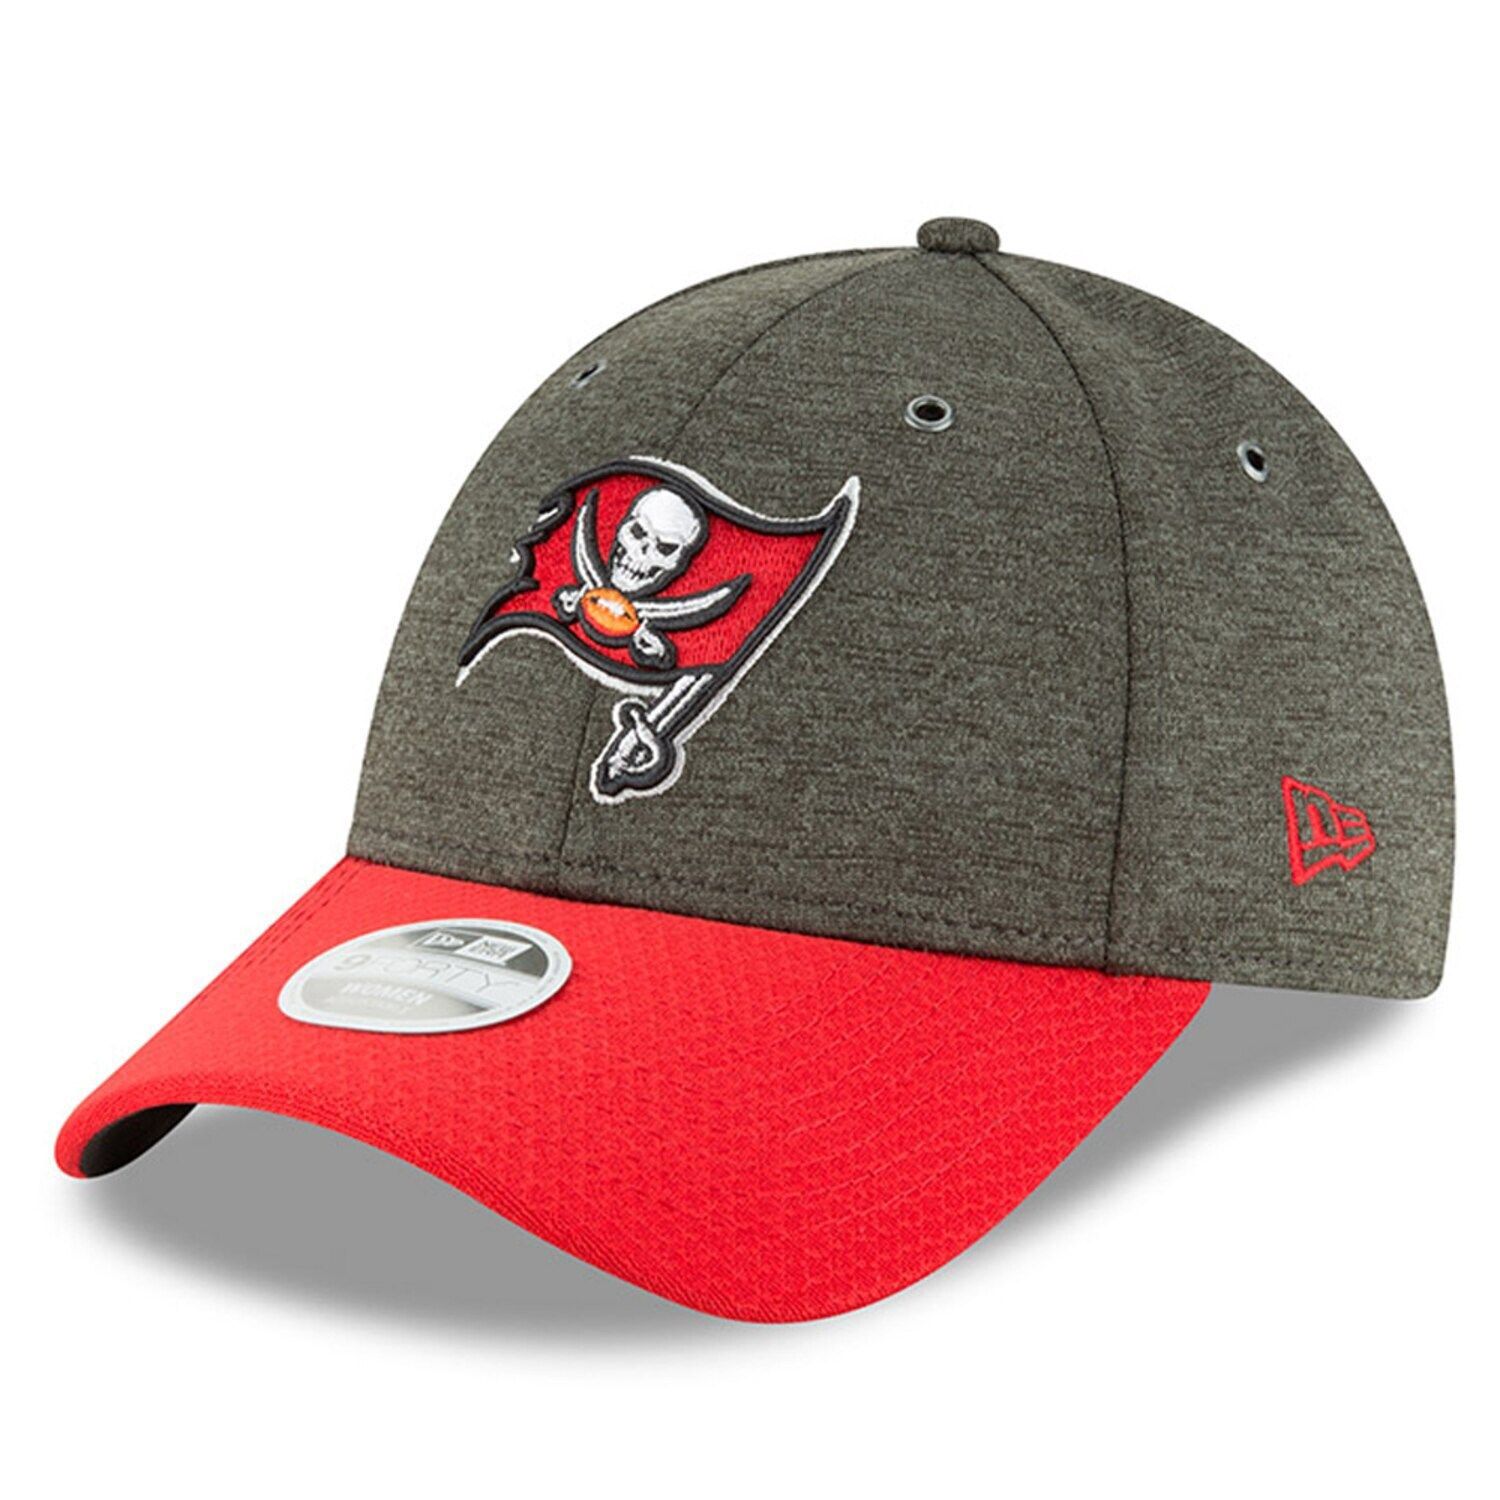 Women S New Era Pewter Red Tampa Bay Buccaneers 2018 Nfl Sideline Home 9forty Adjustable Hat Adjustable Hat Hats New Era